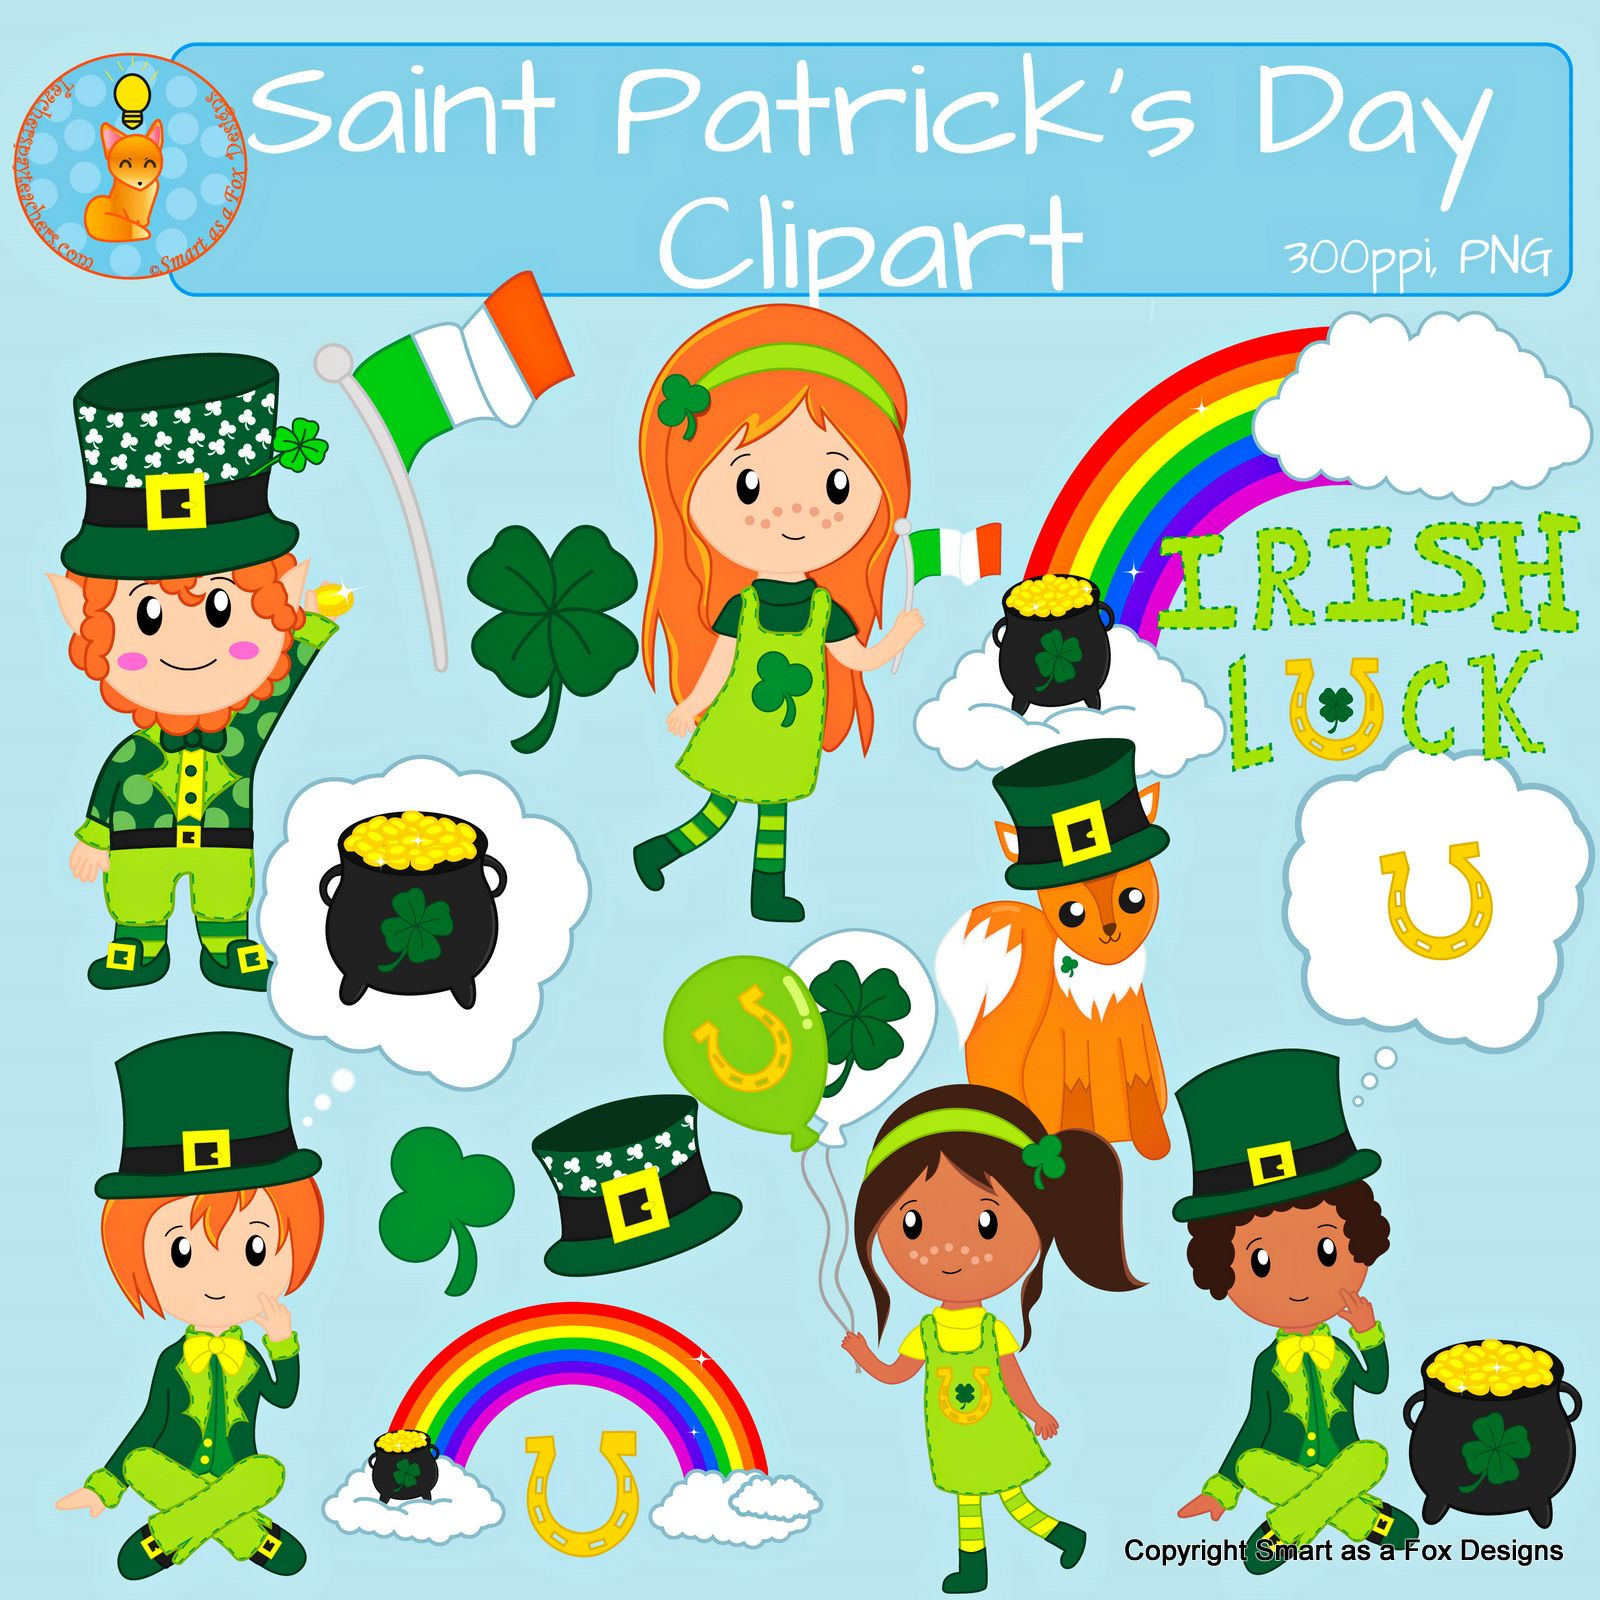 Clipart For Saint Patrick S Day By Smart As A Fox Designs Png 300 Ppi Transparent Background This Collection Contains Clip Art Fox Design St Patricks Day